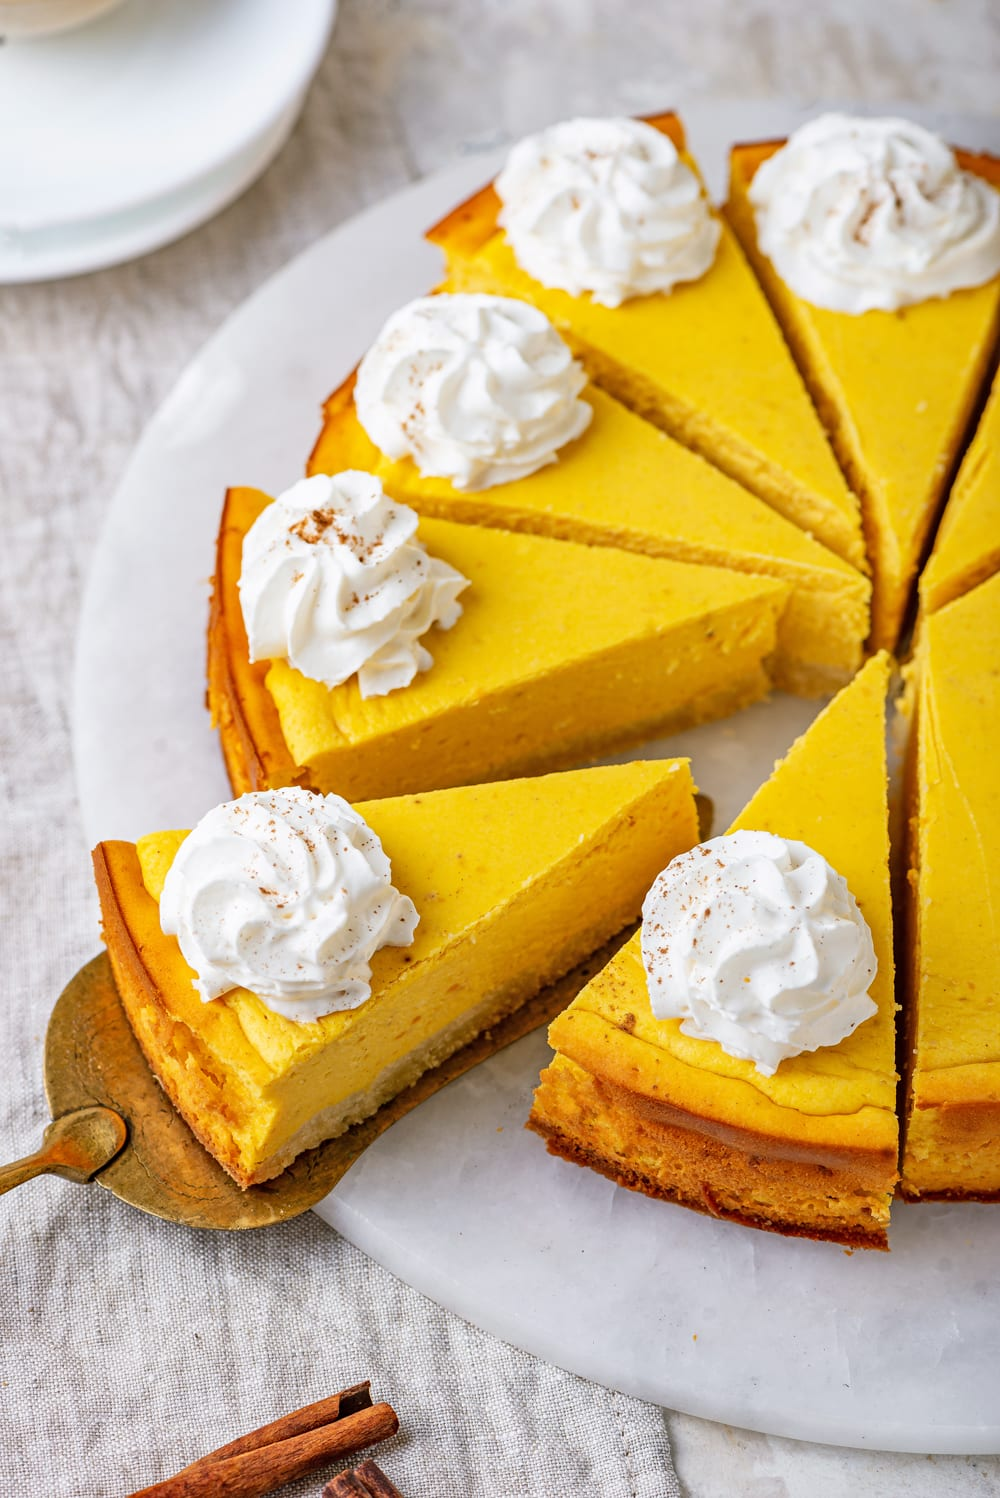 Slices of pumpkin cheesecake topped with whipped cream on a white plate.